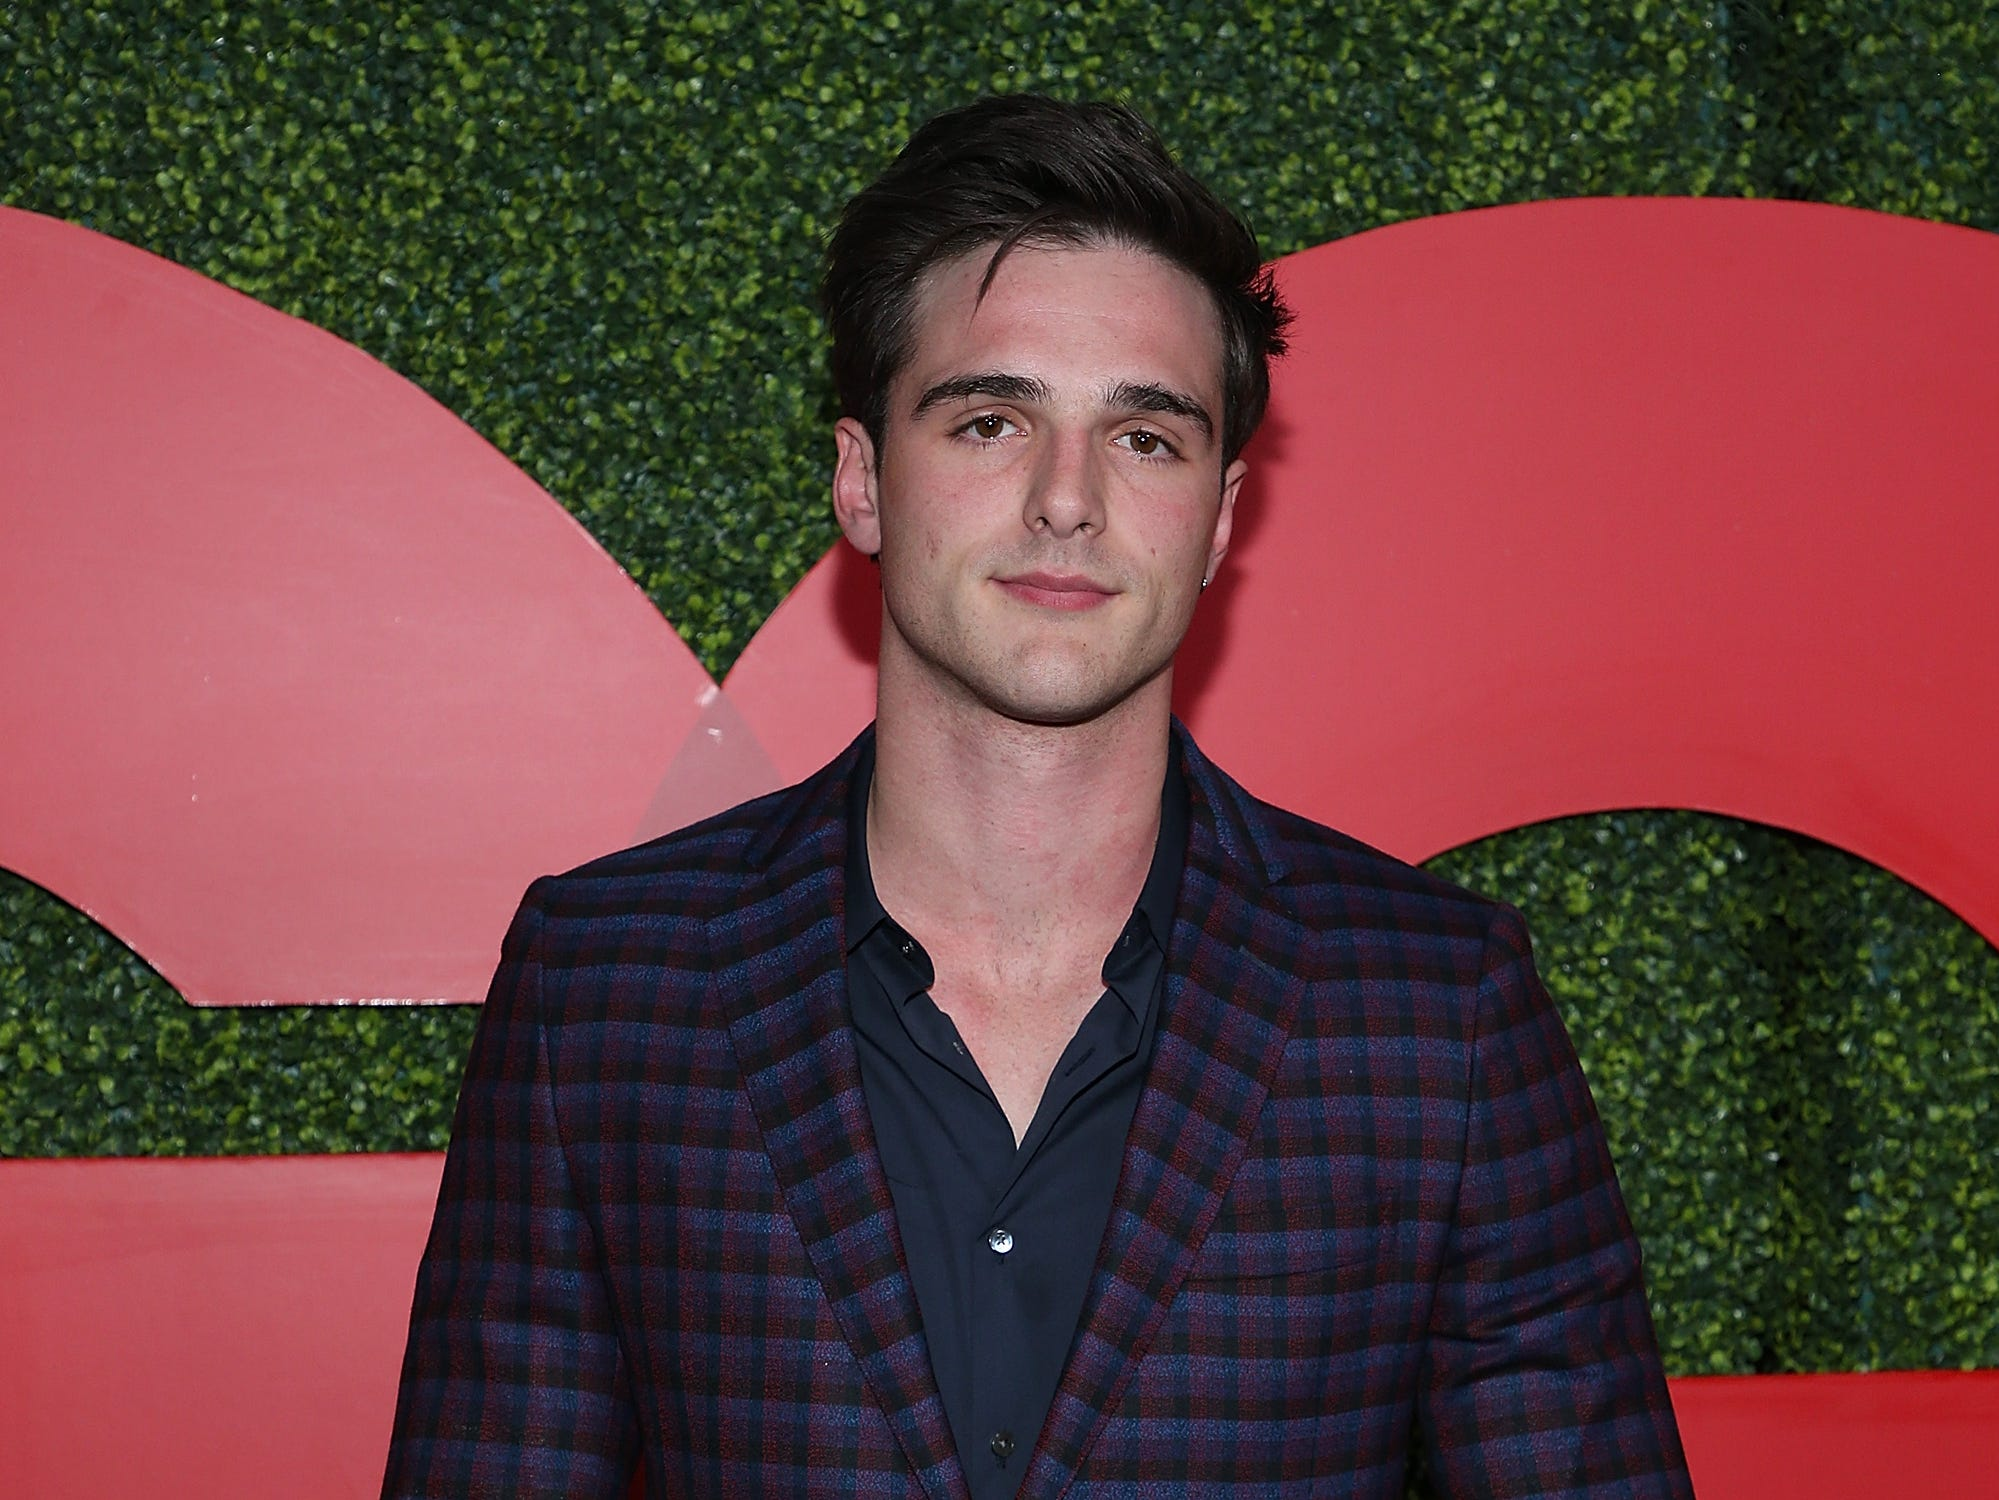 BEVERLY HILLS, CA - DECEMBER 06:  Jacob Elordi attends the 2018 GQ Men Of The Year Party at Benedict Estate on December 6, 2018 in Beverly Hills, California.  (Photo by Phillip Faraone/Getty Images,) ORG XMIT: 775261131 ORIG FILE ID: 1069359798